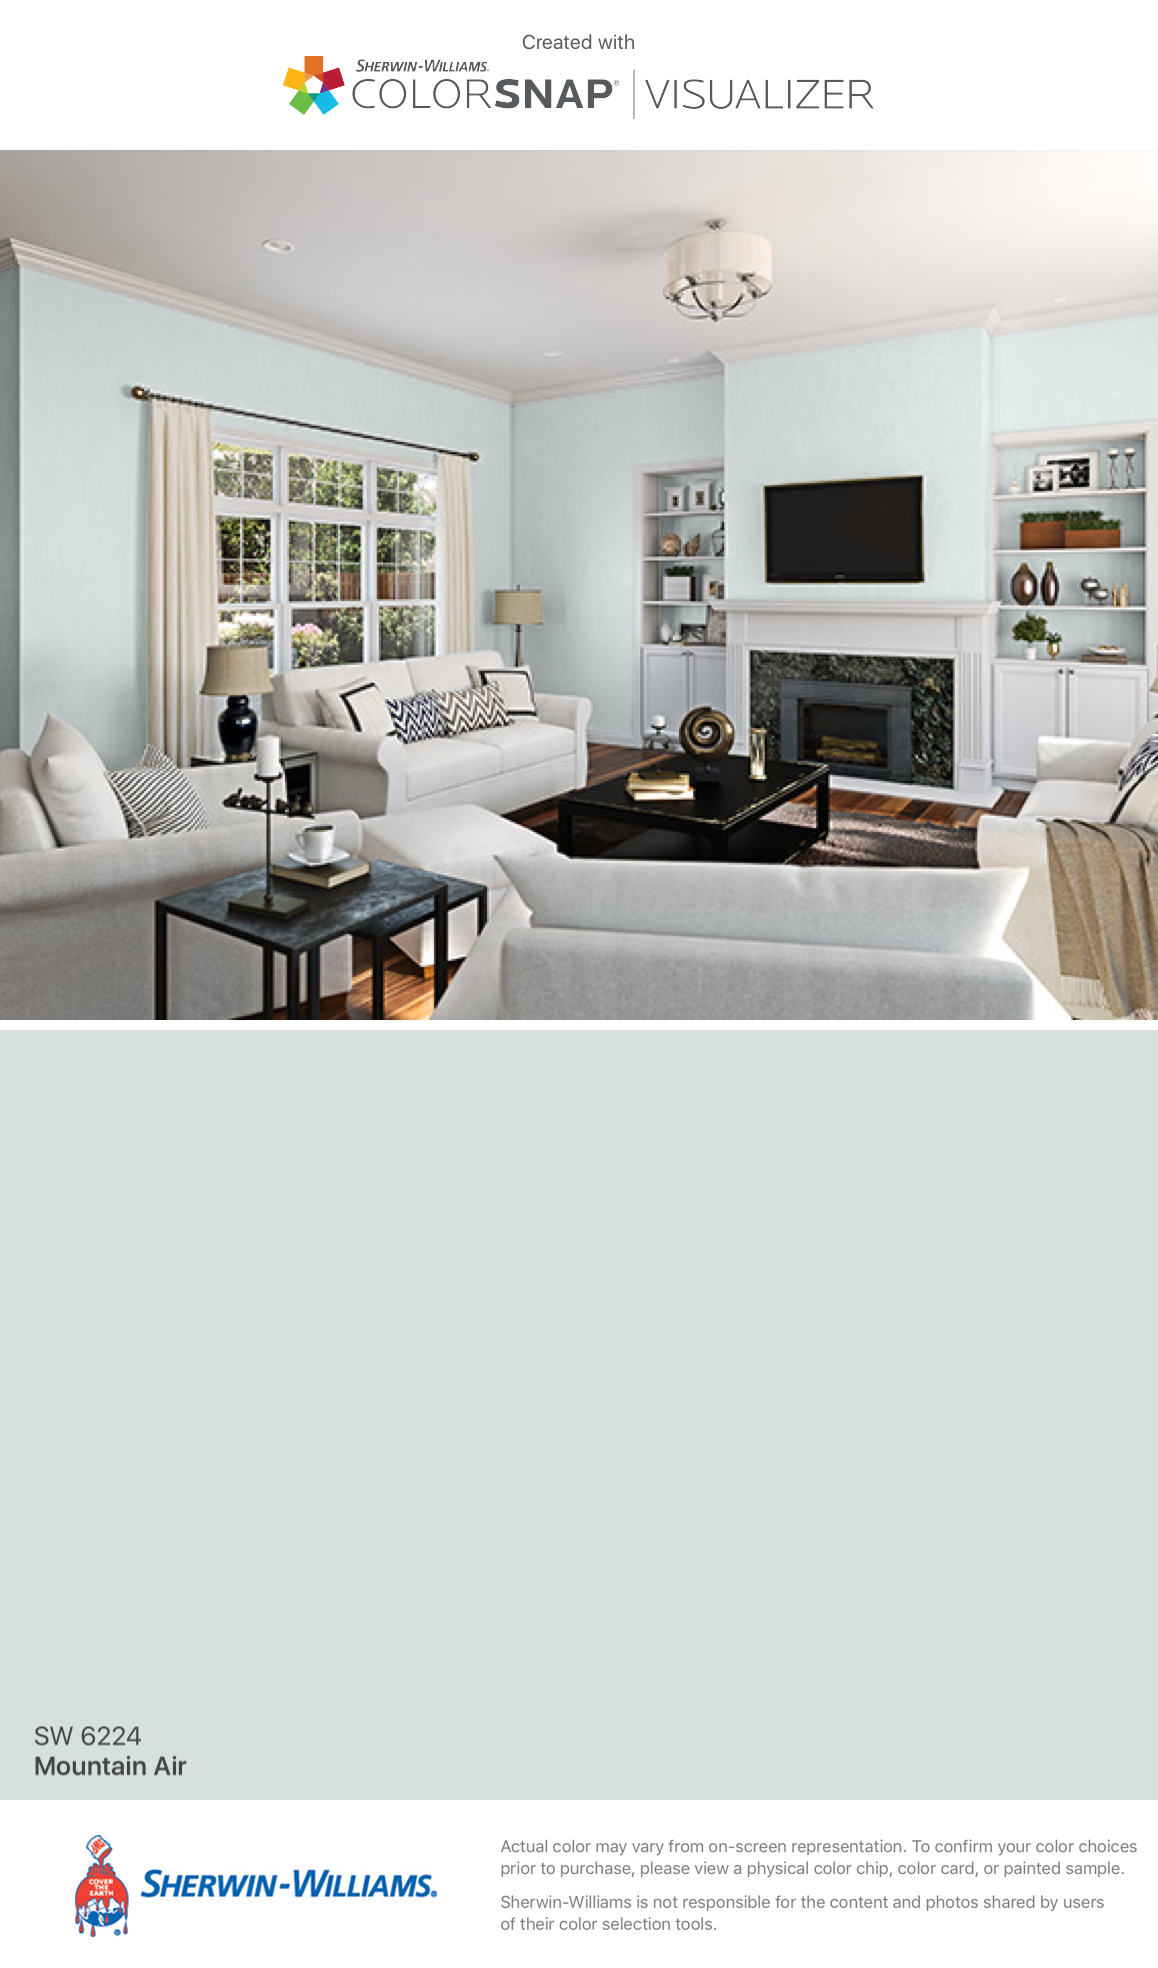 Sherwin Williams Mountain Air SW 6224 Paint colors